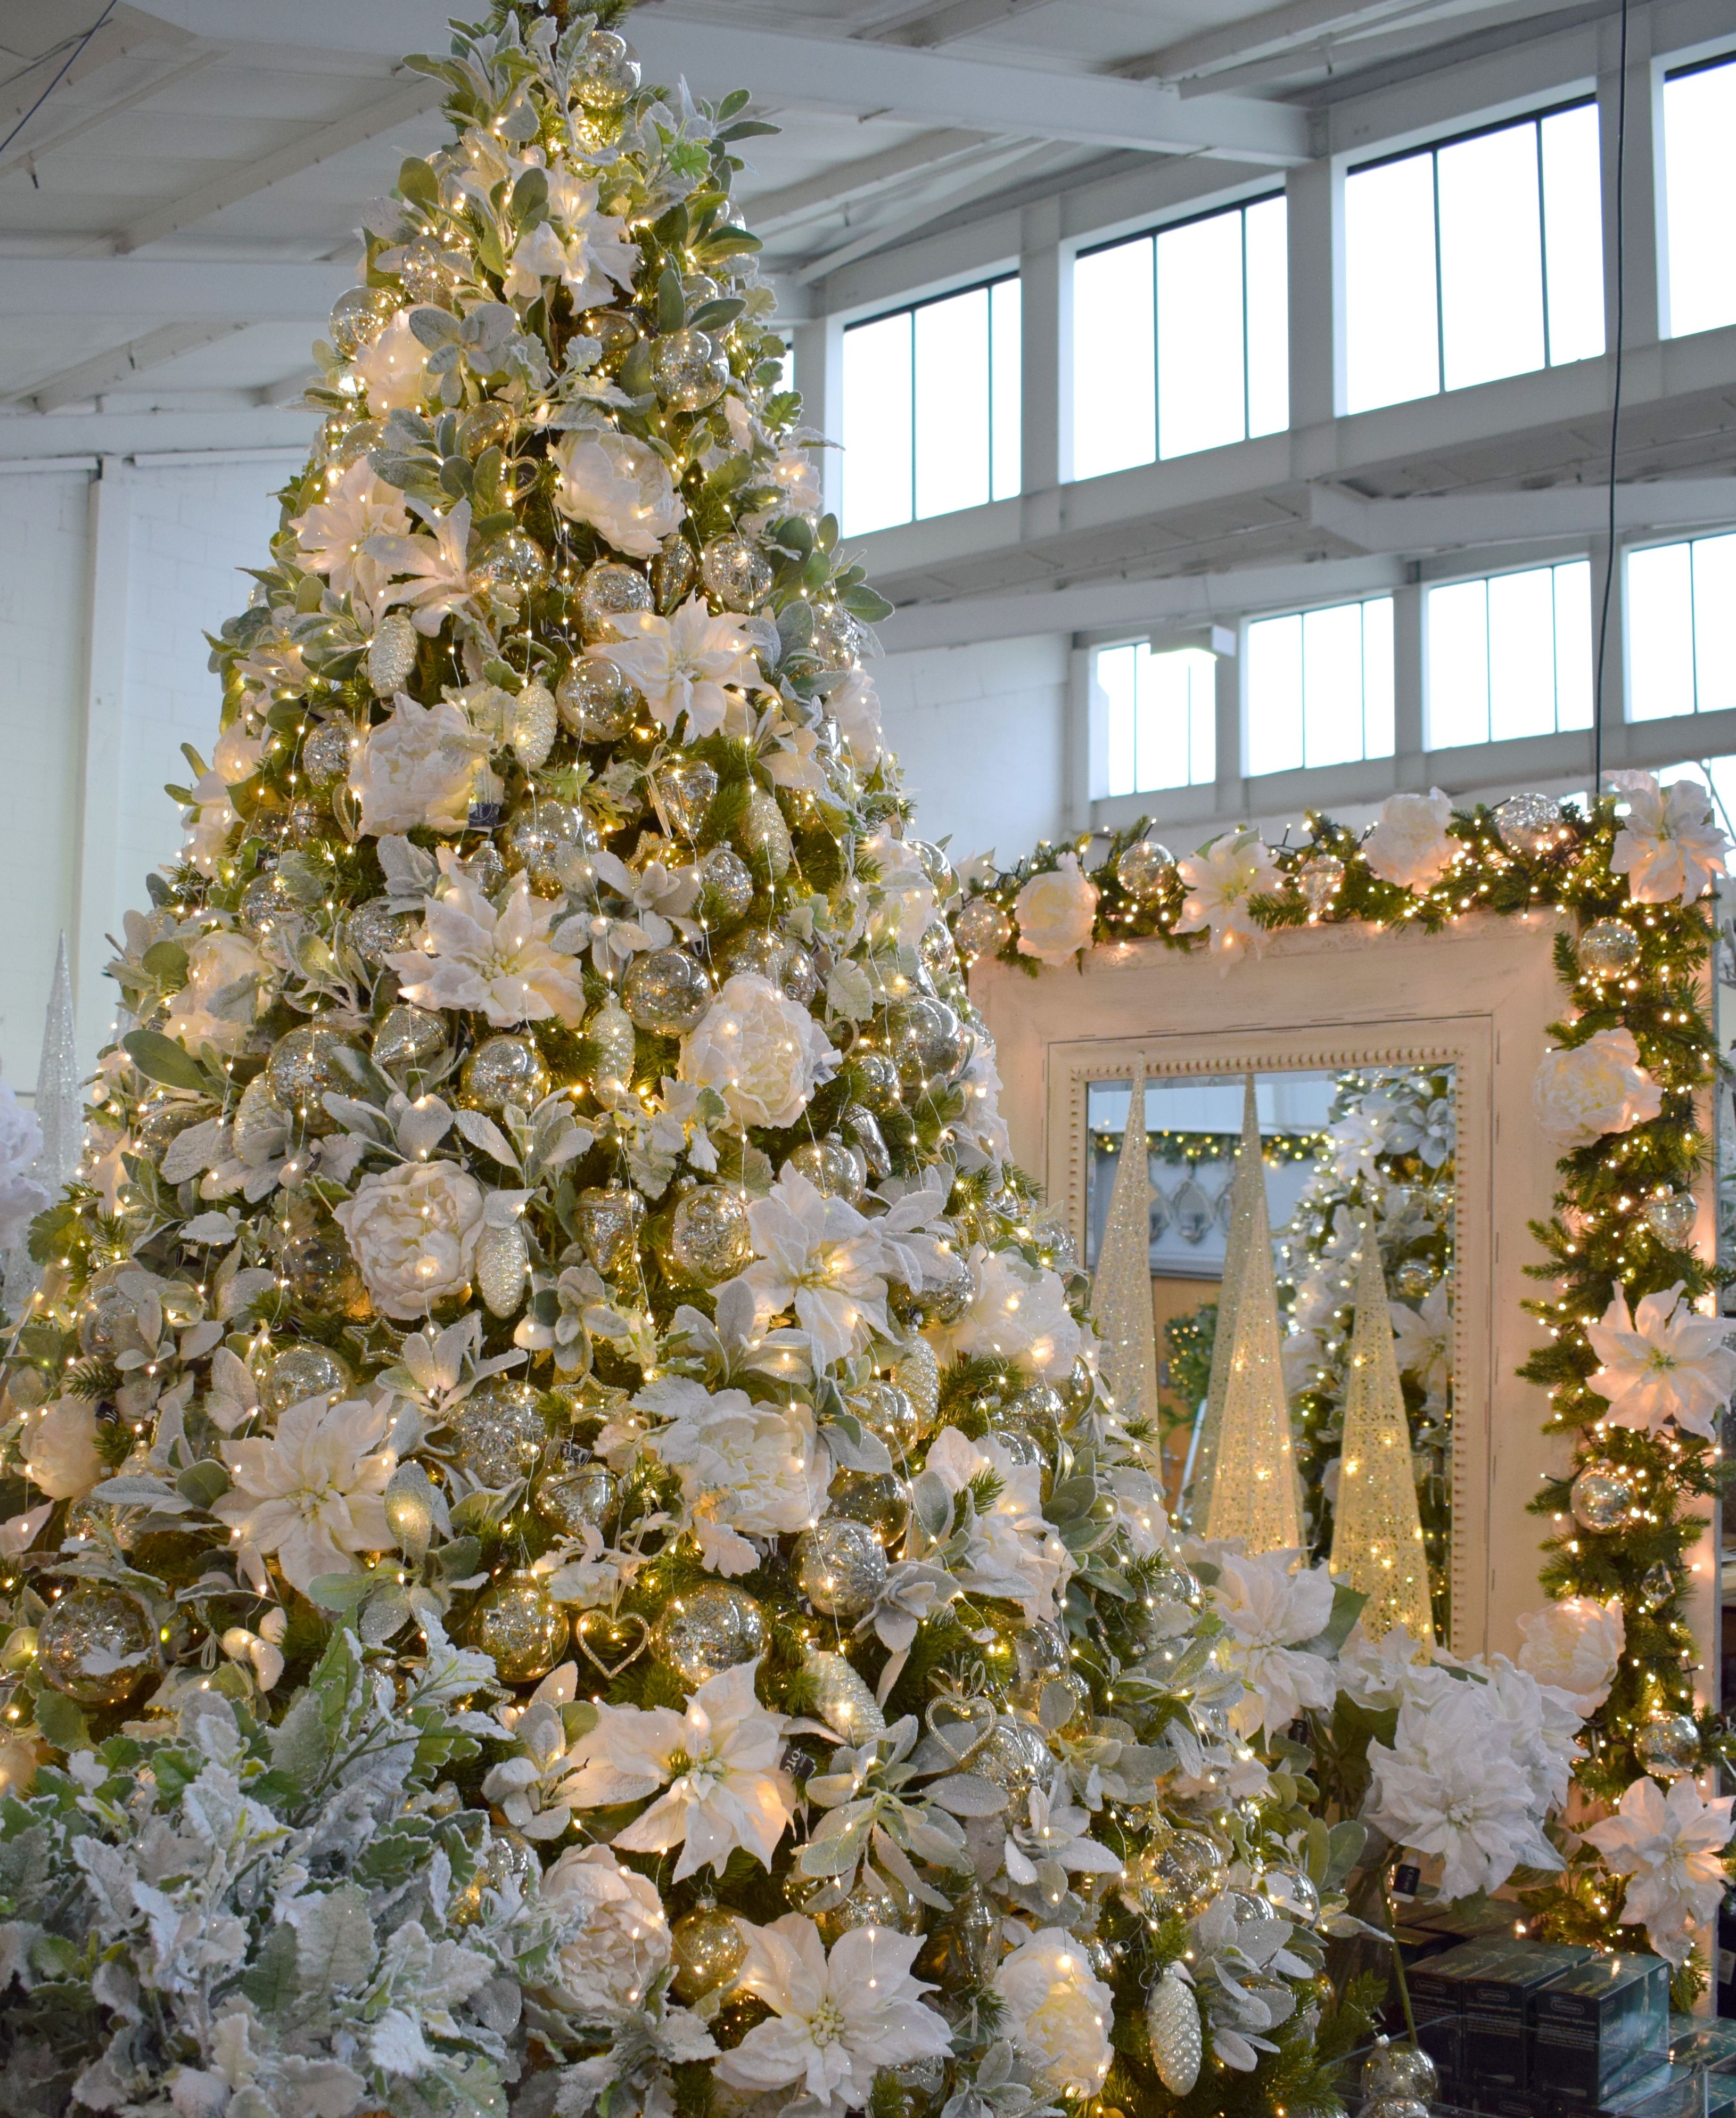 A Stunning Grand Christmas Tree With Fresh Festive Floral Accents Warm White Glow Ligh Christmas Decorations Wholesale Christmas Lights Christmas Decorations